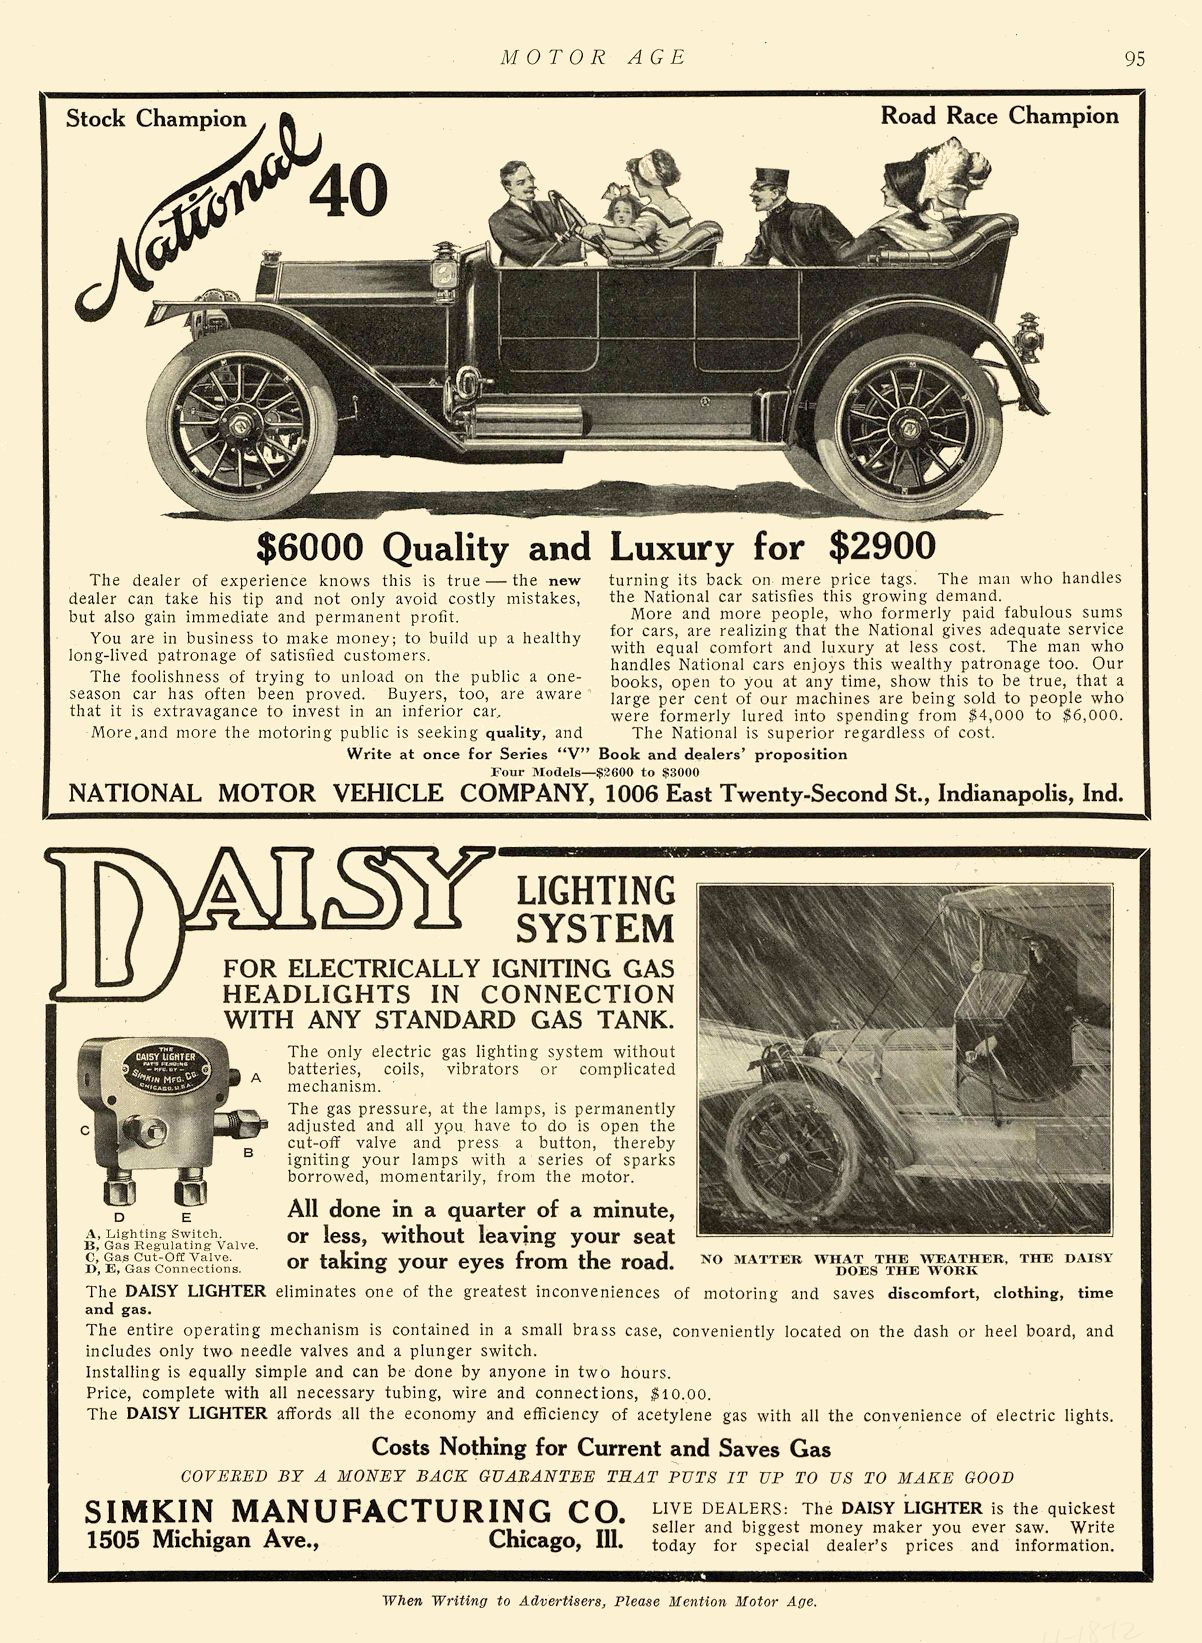 1912 4 18 NATIONAL National 40 $6000 Quality and Luxury for $2900 NATIONAL MOTOR VEHICLE COMPANY Indianapolis, IND MOTOR AGE April 18, 1912 8.25″x12″ page 95